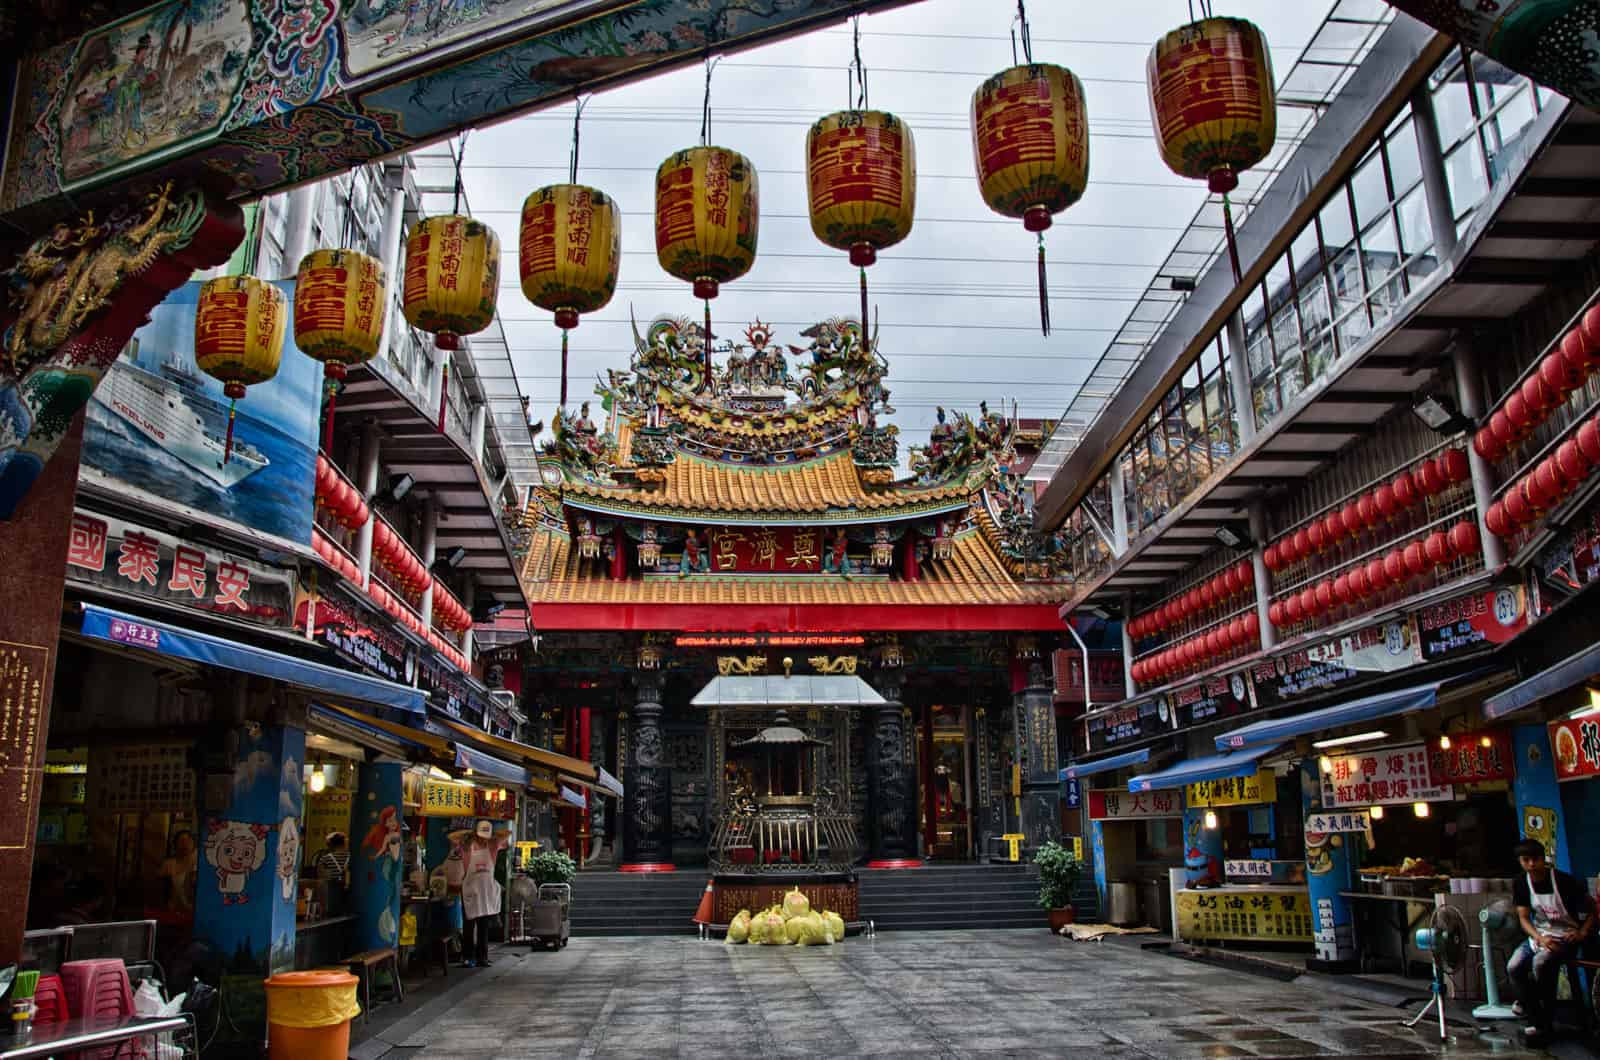 Lanterns and Temple at Miaokou Night Market in Keelung, Taiwan